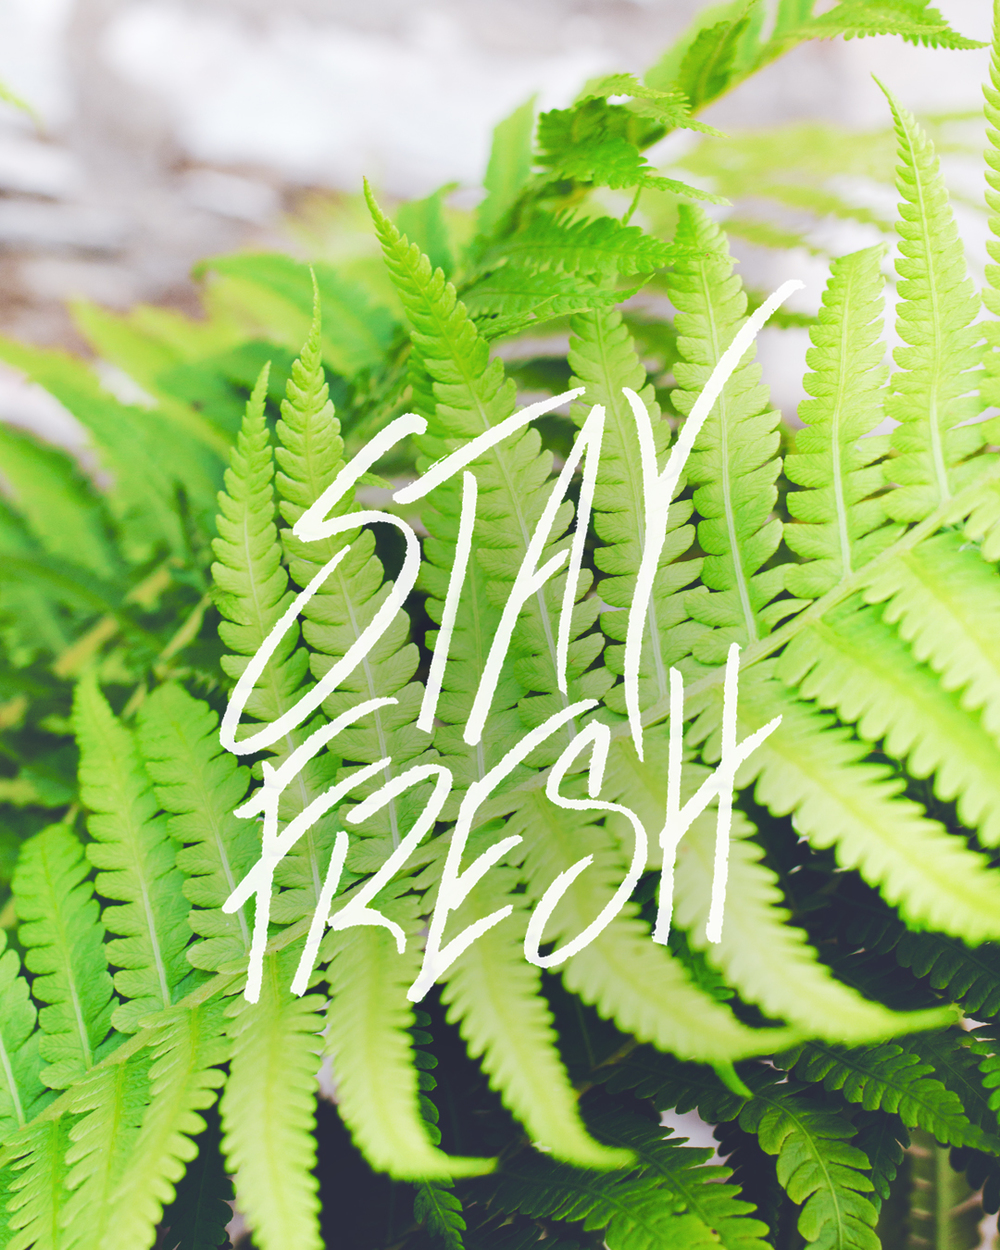 Stay Fresh   Personal lettering project.  (Find the original post here).